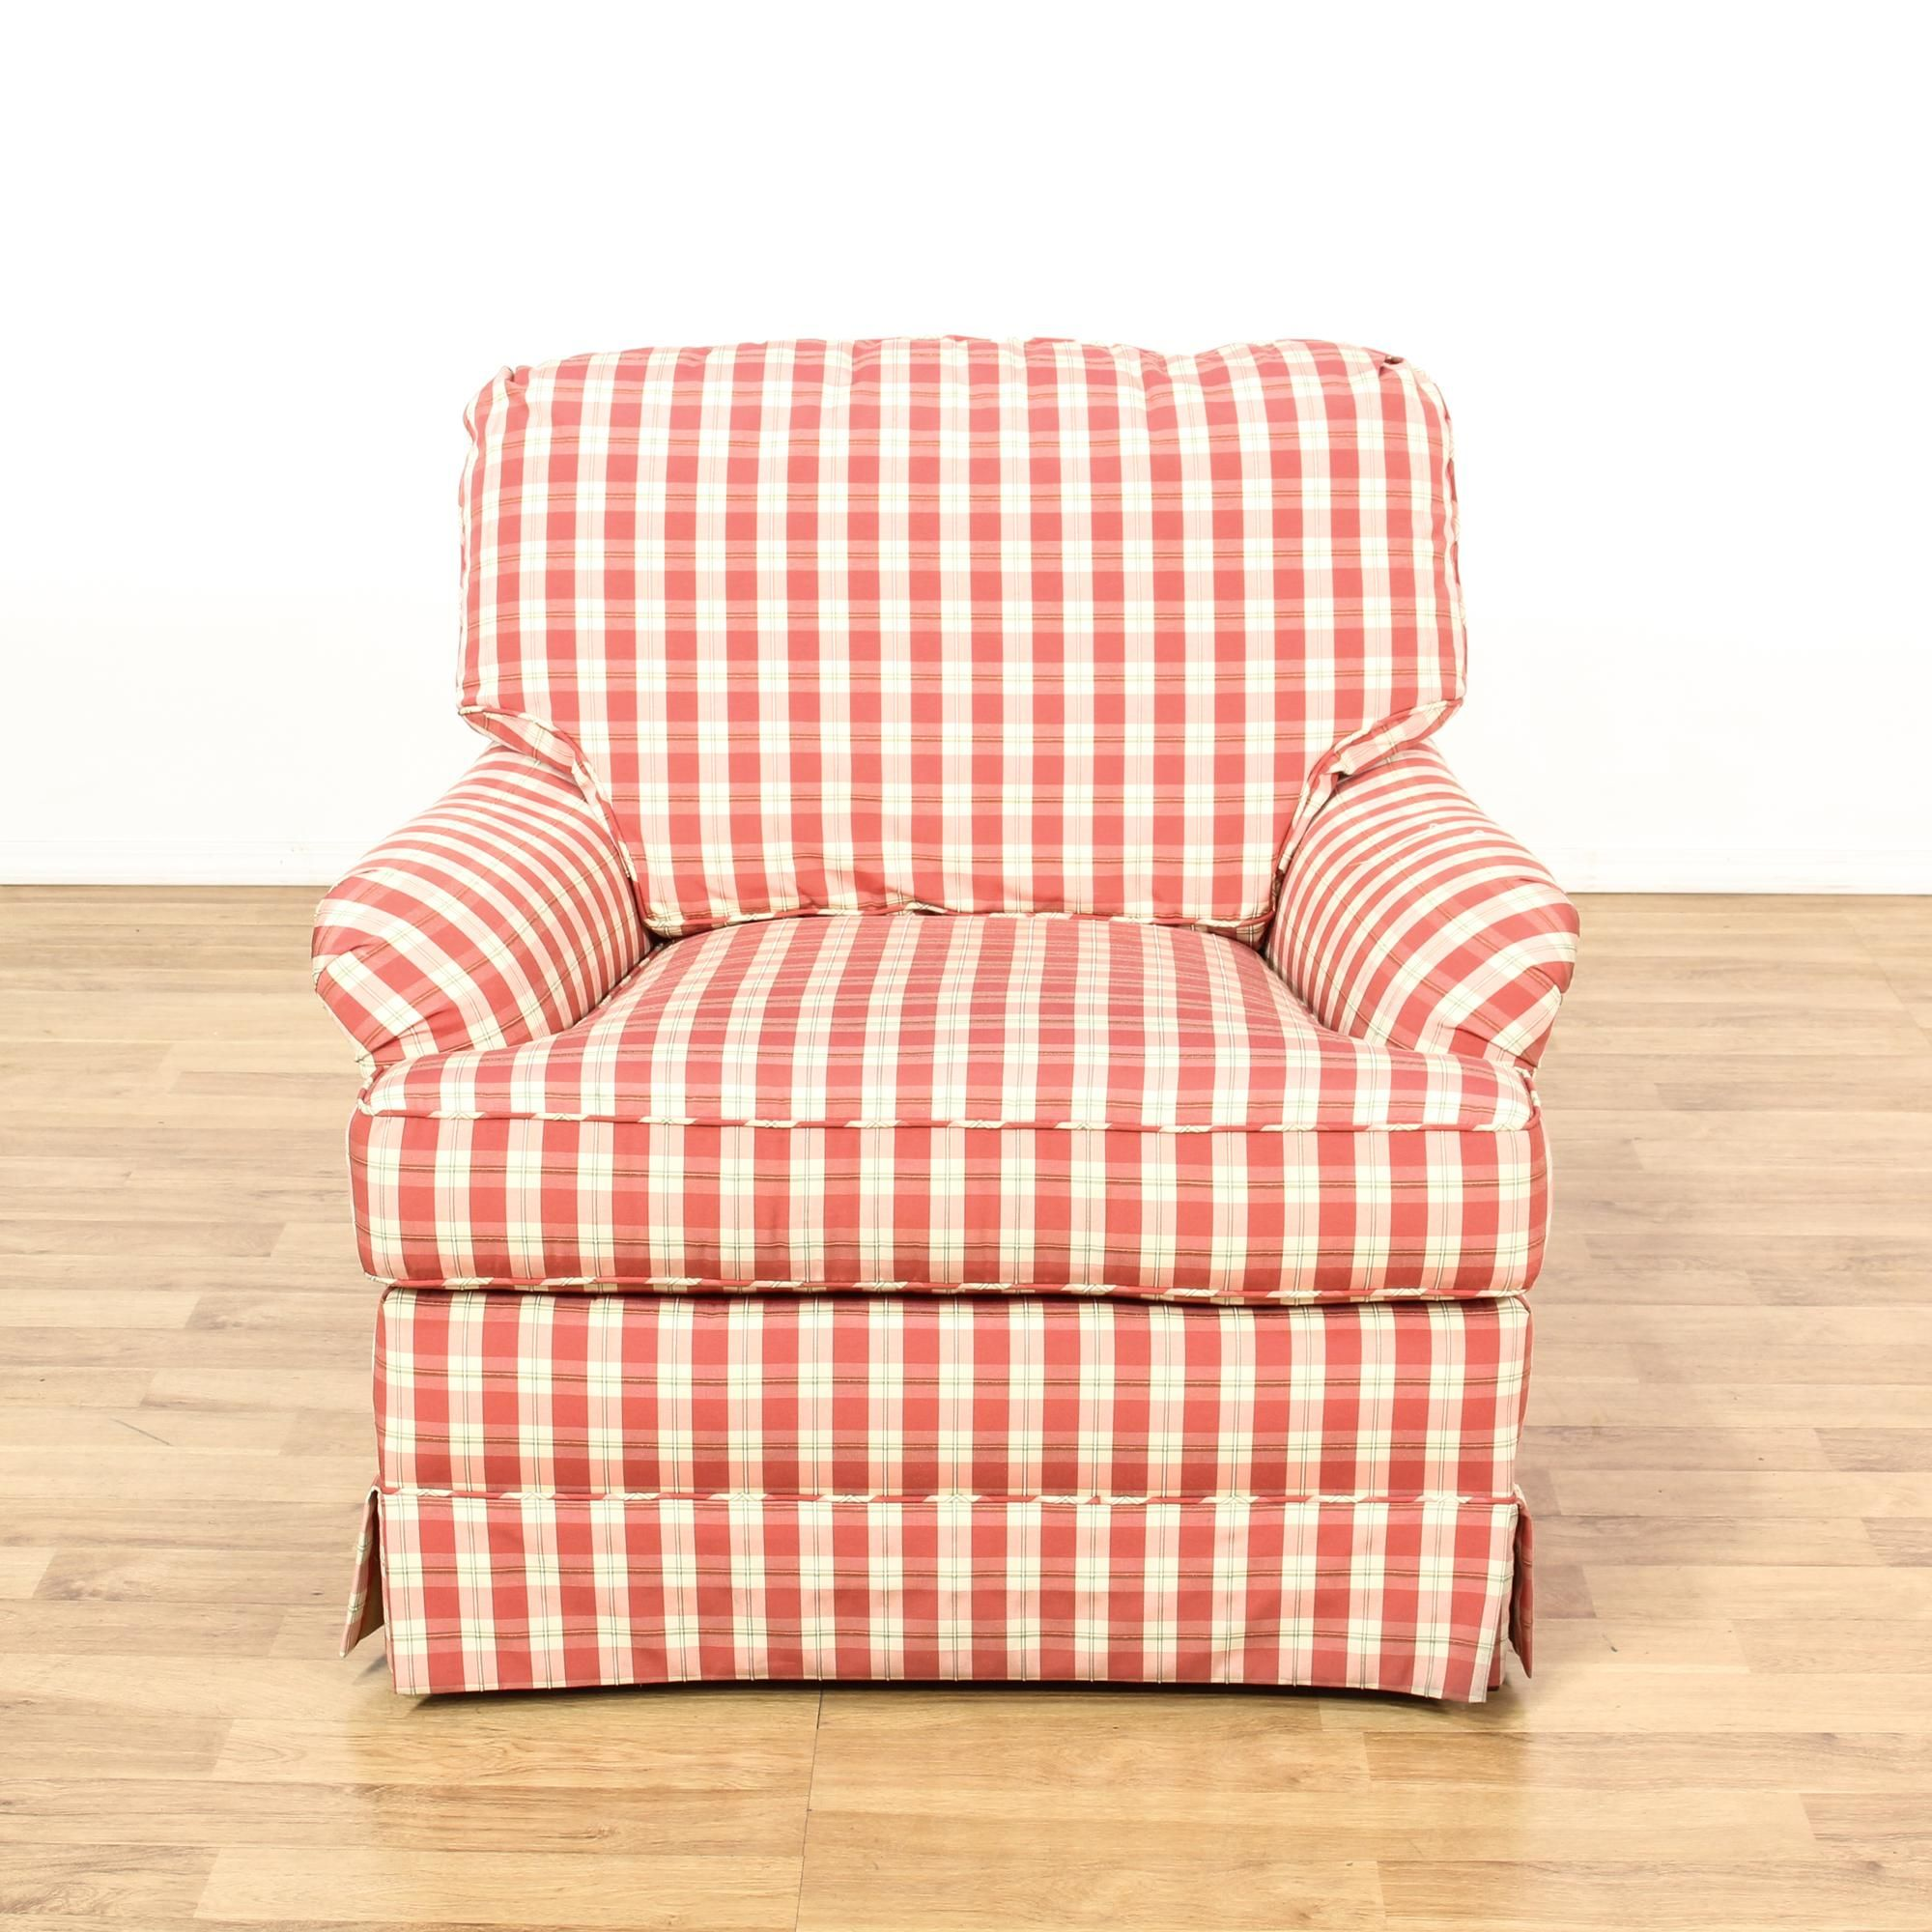 This Armchair Is Upholstered In A Red And White Plaid Gingham Print Fabric.  This Cottage Chic Accent Chair Has A Tall Cushion Back, Curved Arms And A  Chair ...